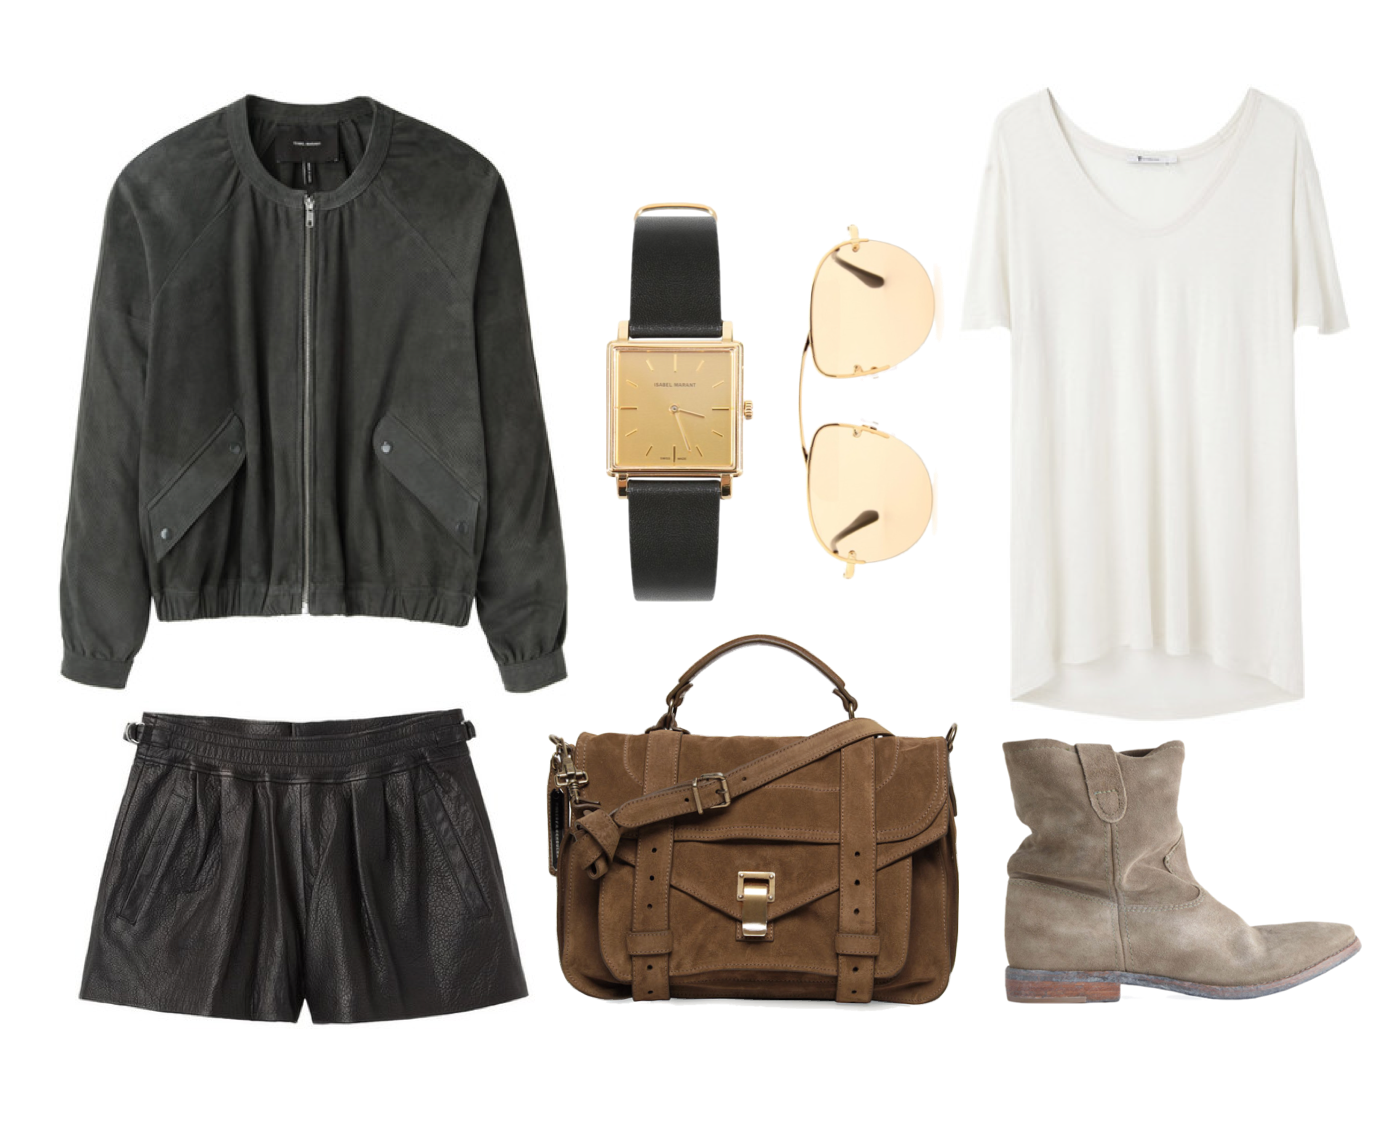 WIsh Outfit March - Isabel Marant, Proenza Schouler and T by Alexander Wang